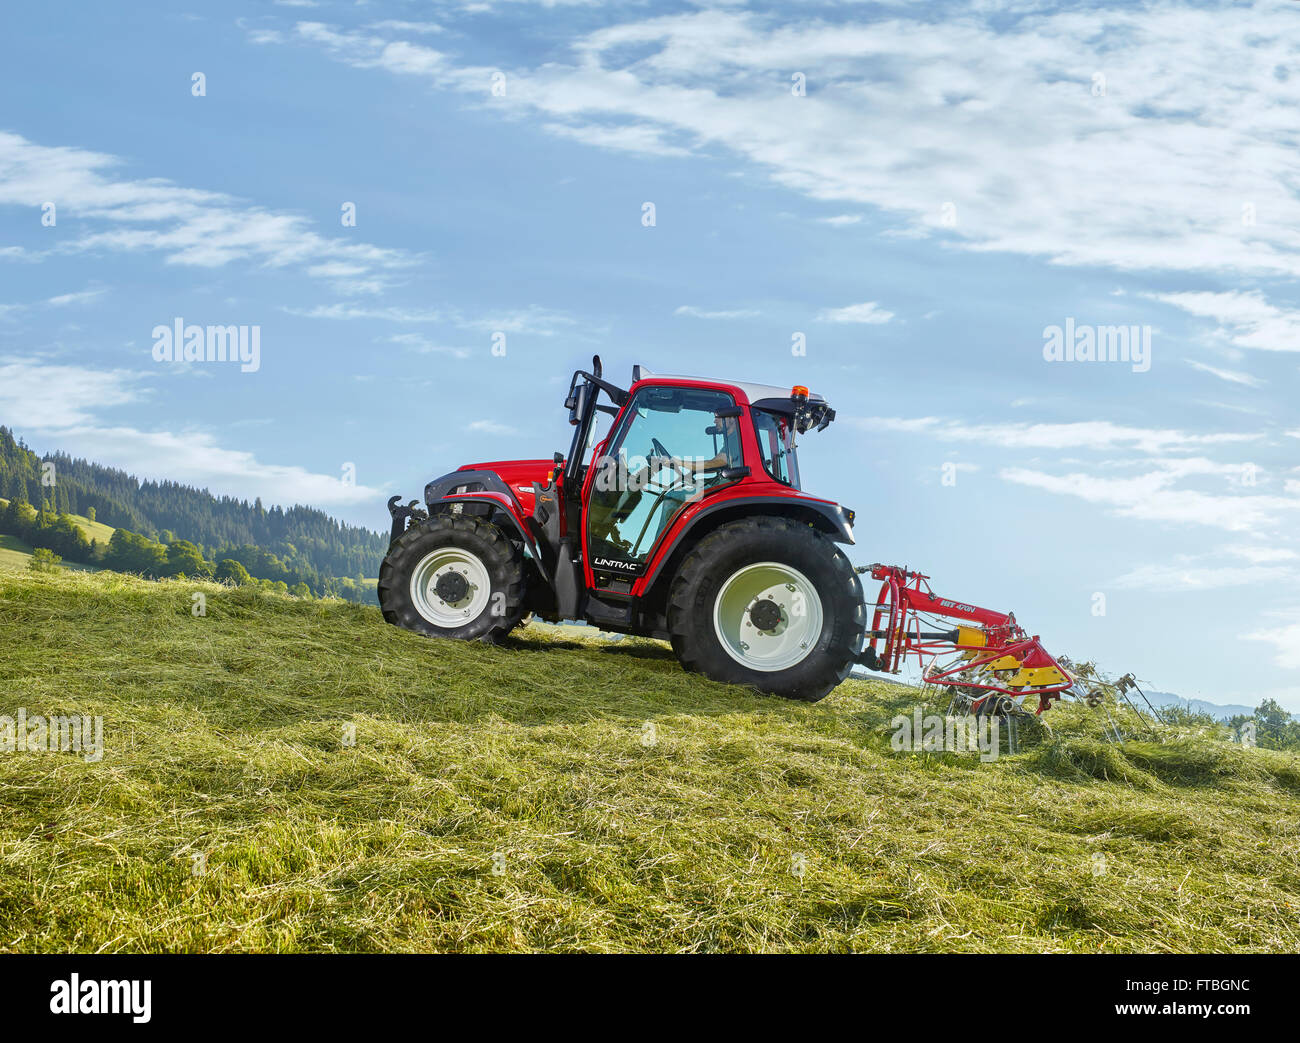 Tractor tedding the freshly cut hay with a tedder, Hopfgarten, Brixental, Tyrol, Austria - Stock Image